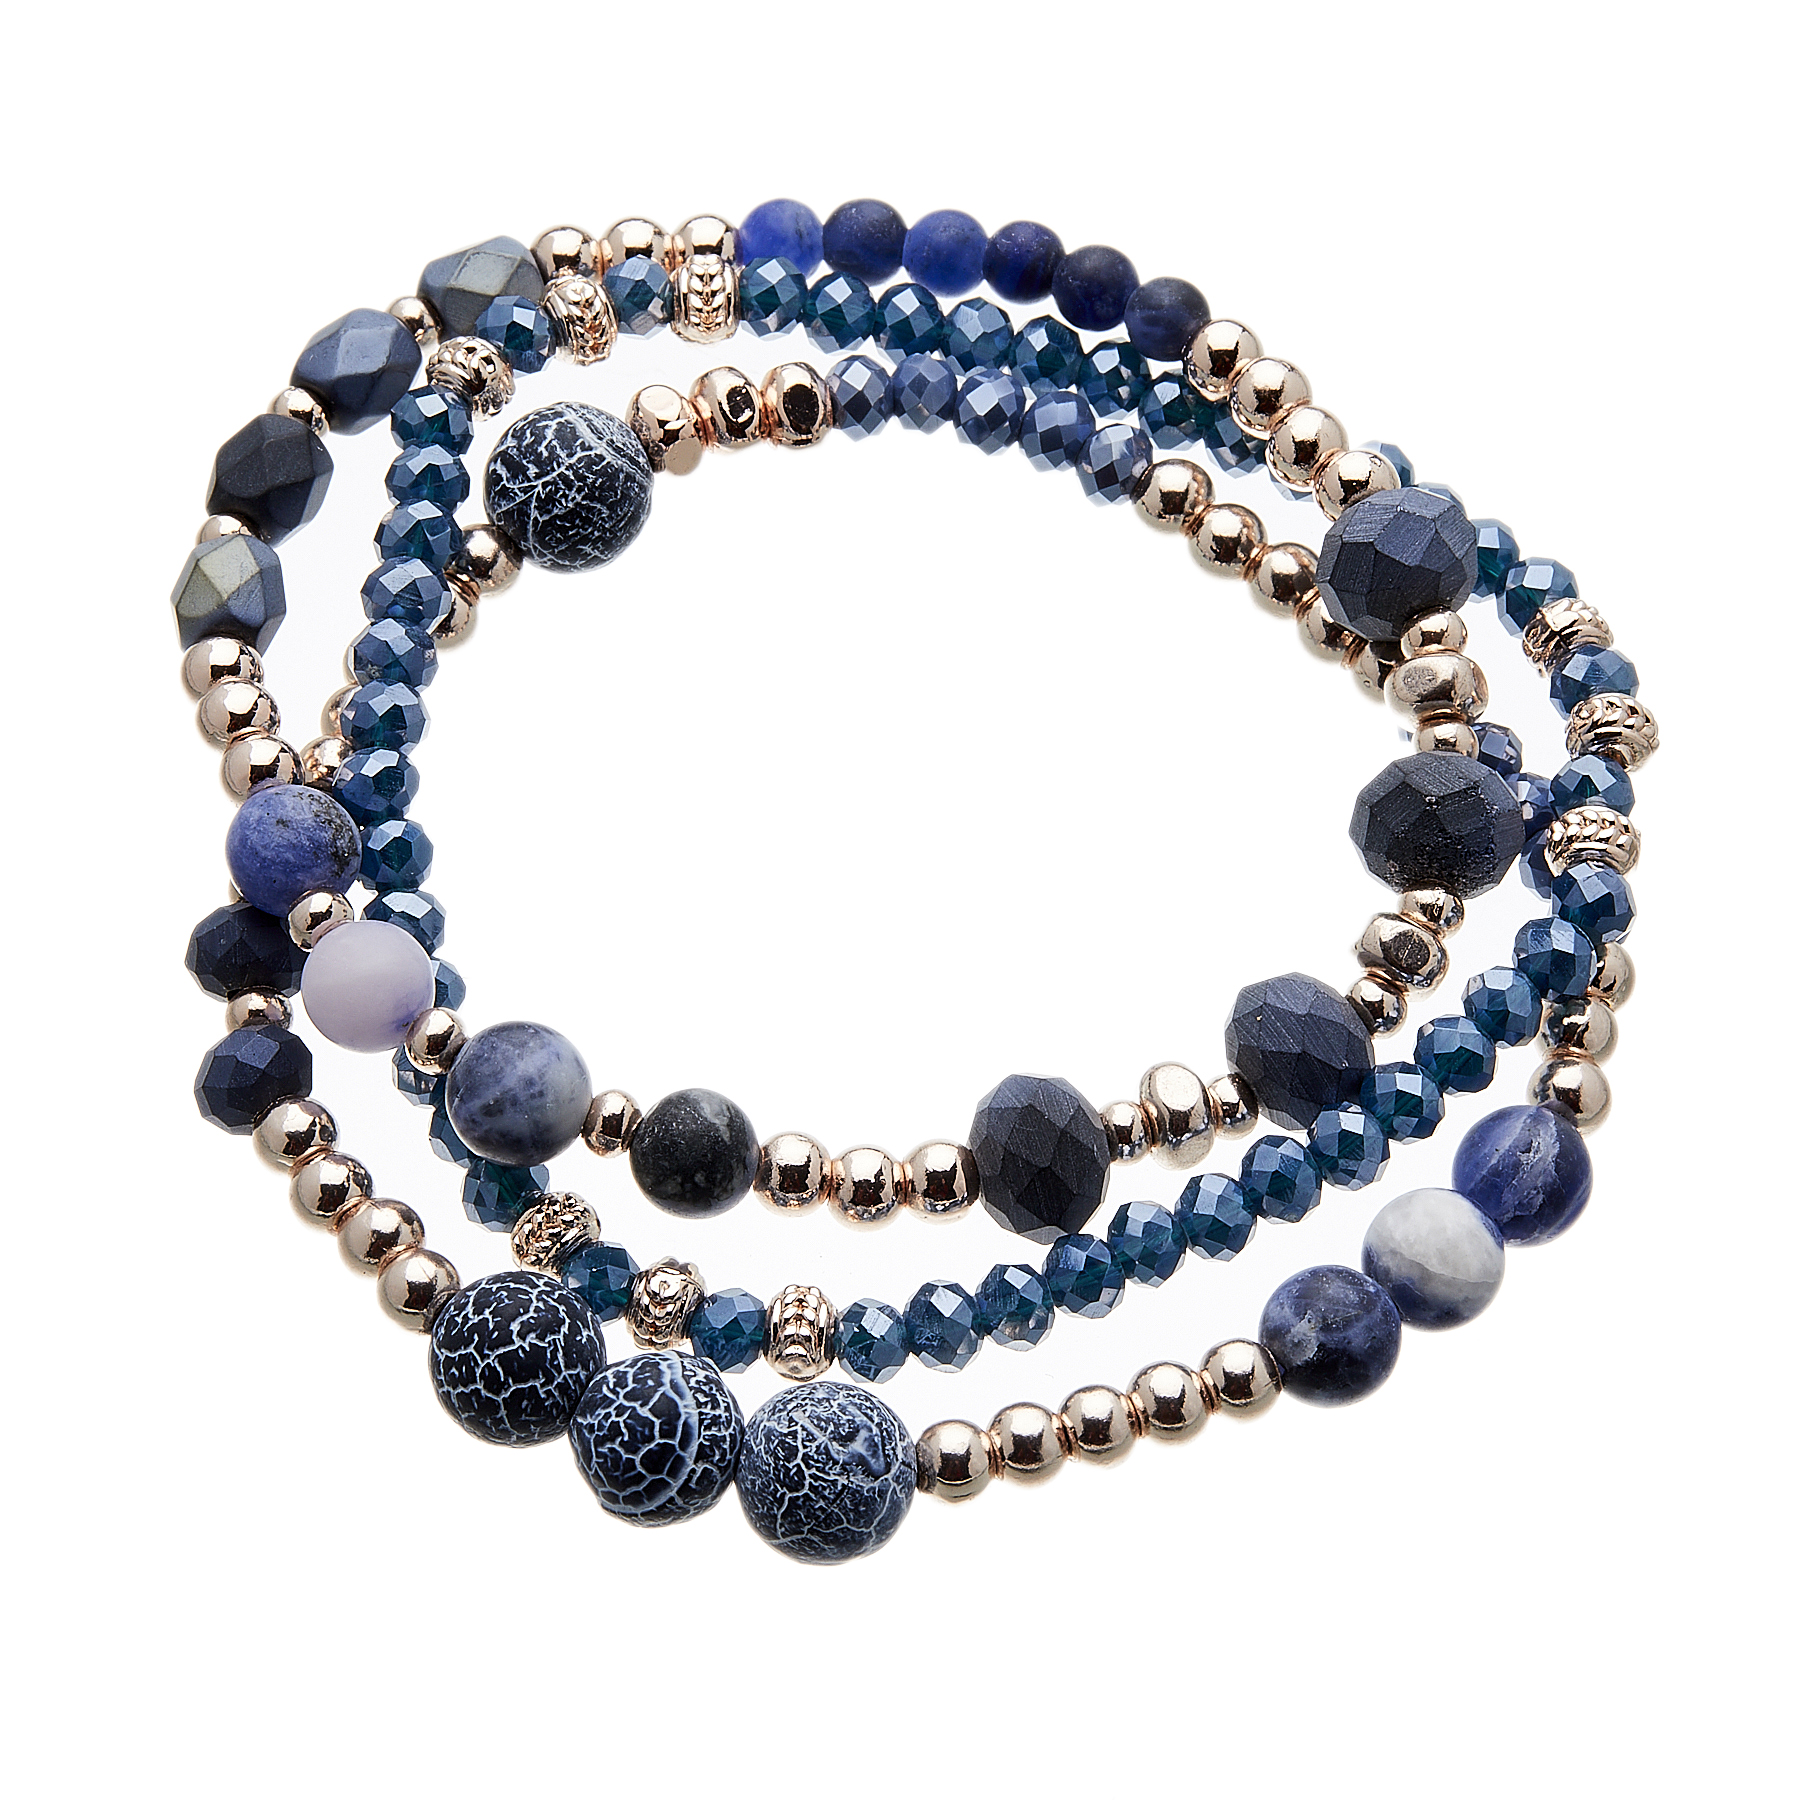 Three Bracelets with blue and champagne gold beads - Yori B01-06-02